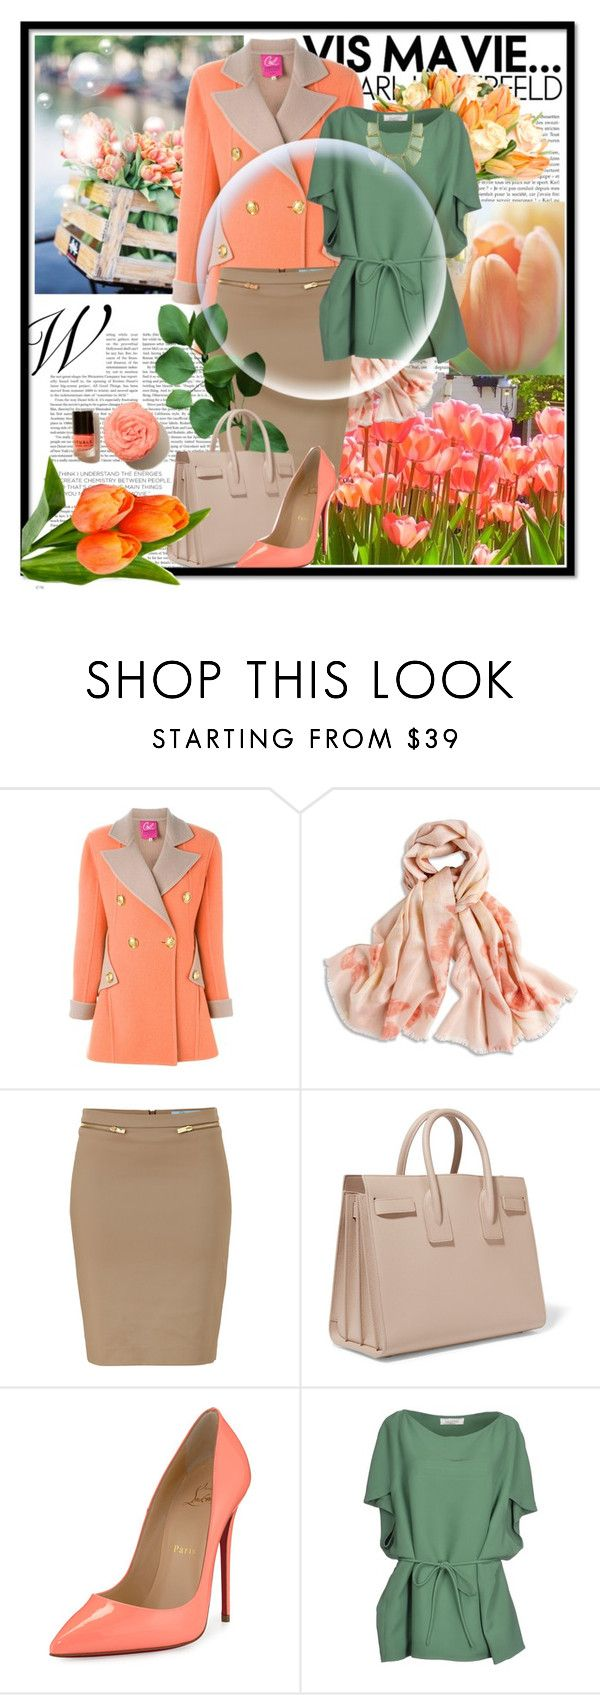 """""""The 8th of March! Working day"""" by julia-kesar ❤ liked on Polyvore featuring Christian Lacroix, Chico's, Blumarine, Yves Saint Laurent, Christian Louboutin, Valentino and Karen Kane"""